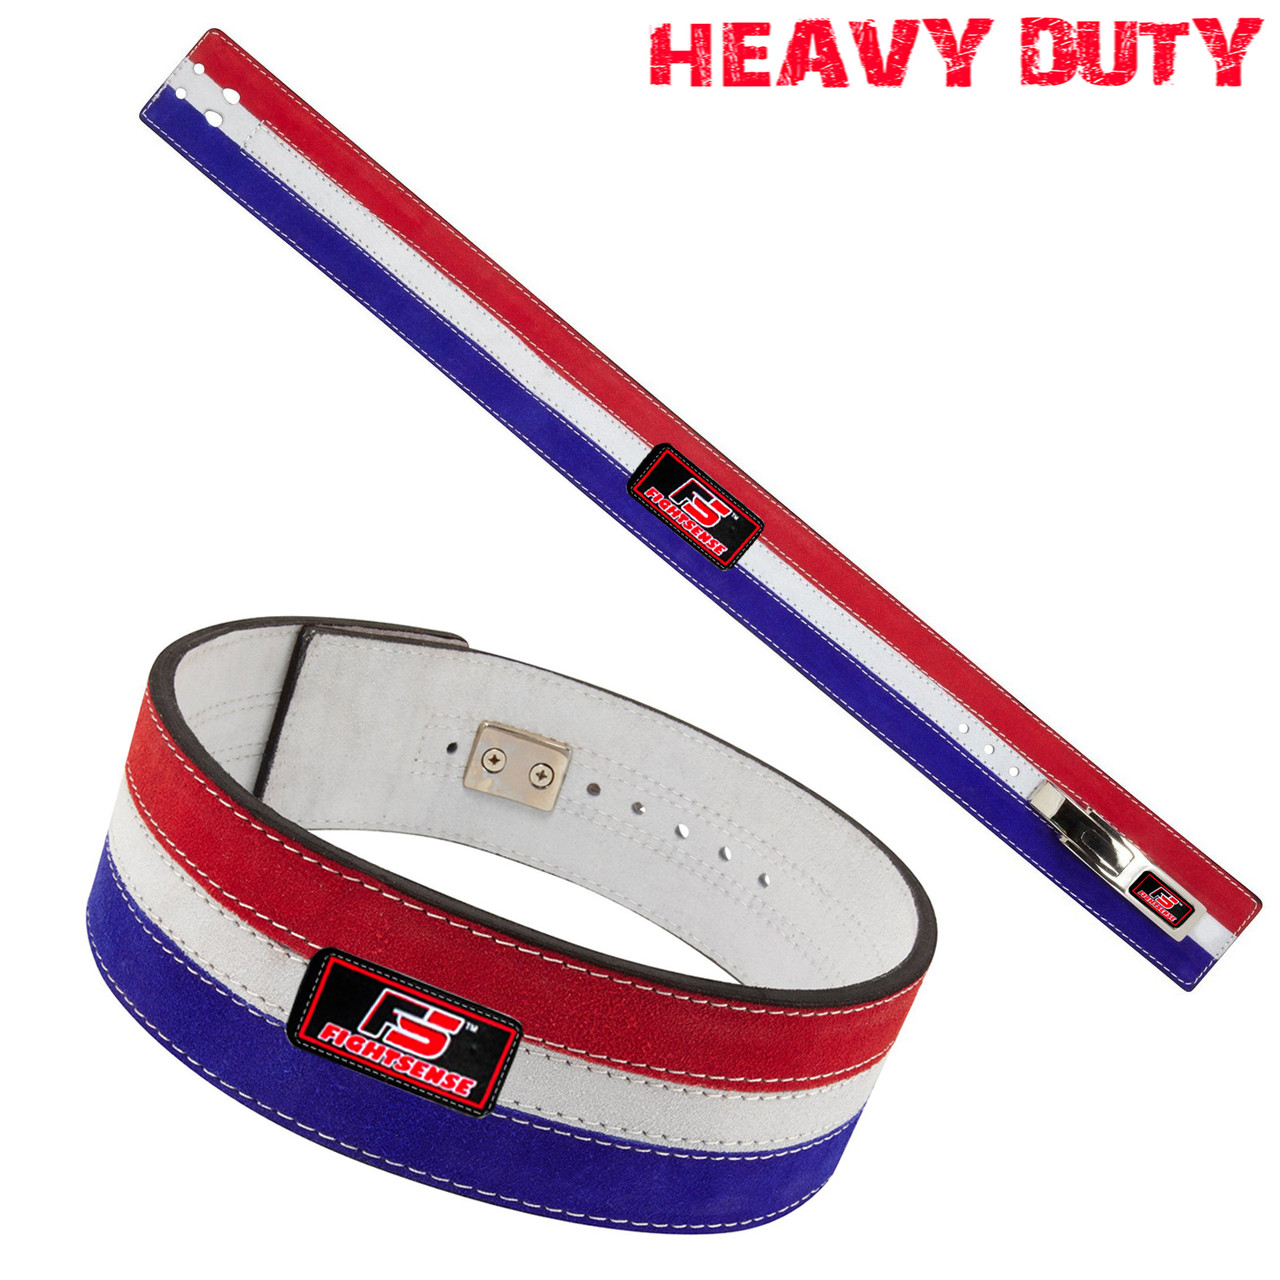 Women's pink gym Crossfit Fitness Weight Training Power Lifting Lever Belt